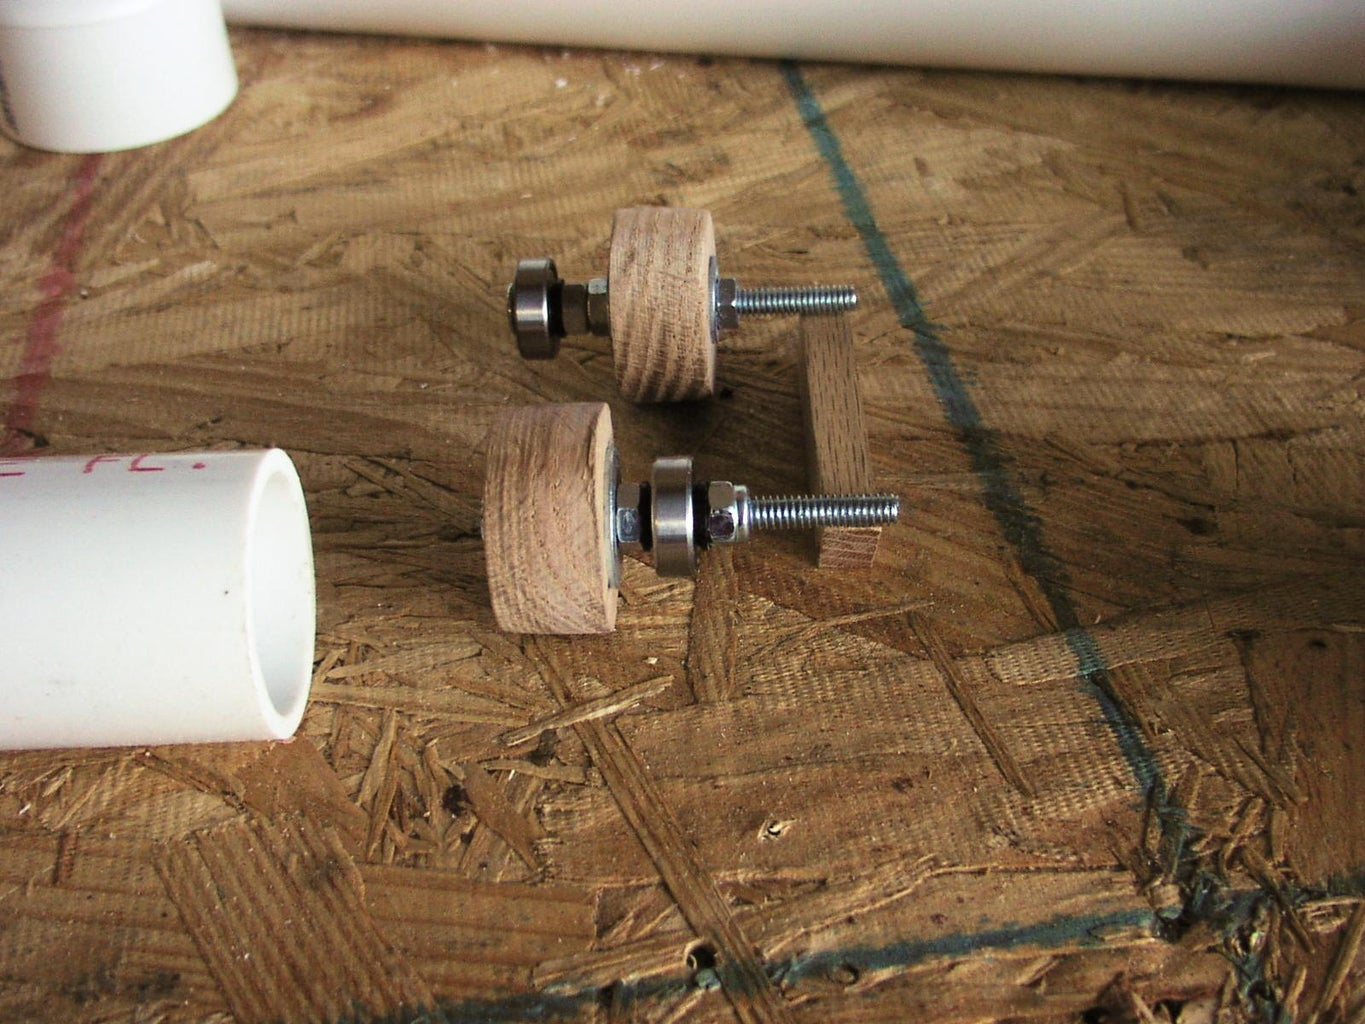 Make Centers for the Inside Pipe